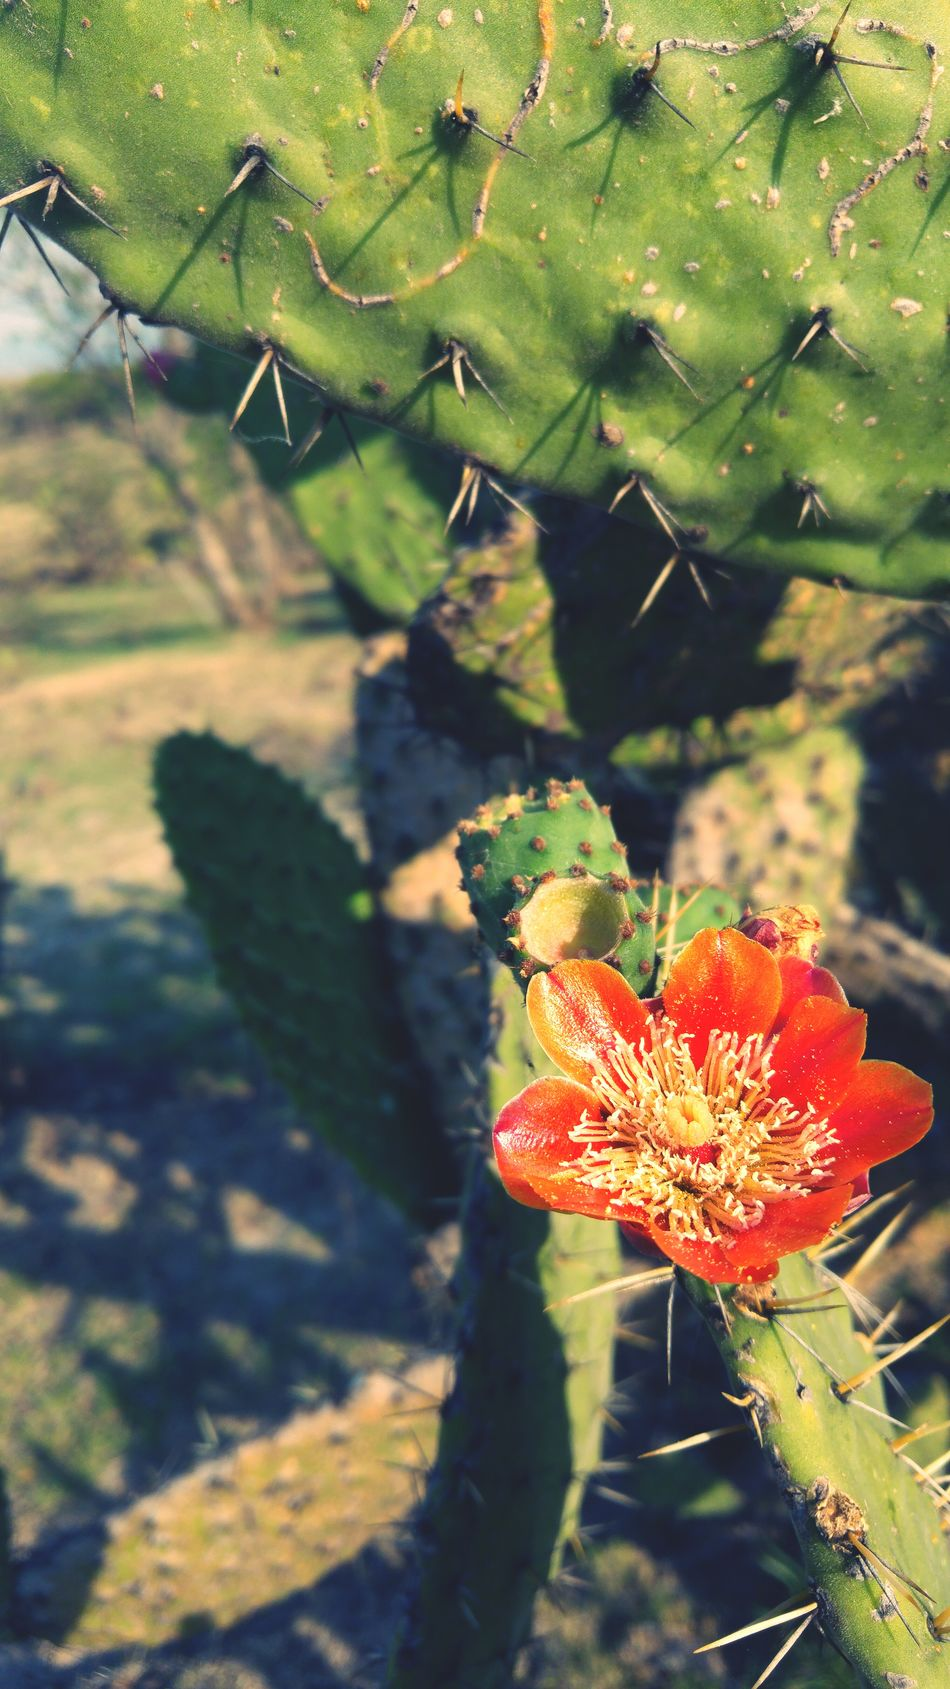 Hot Day! Excelent Day Photo♡ PhonePhotography Photography Nature I Love Nature! Cactus Flower